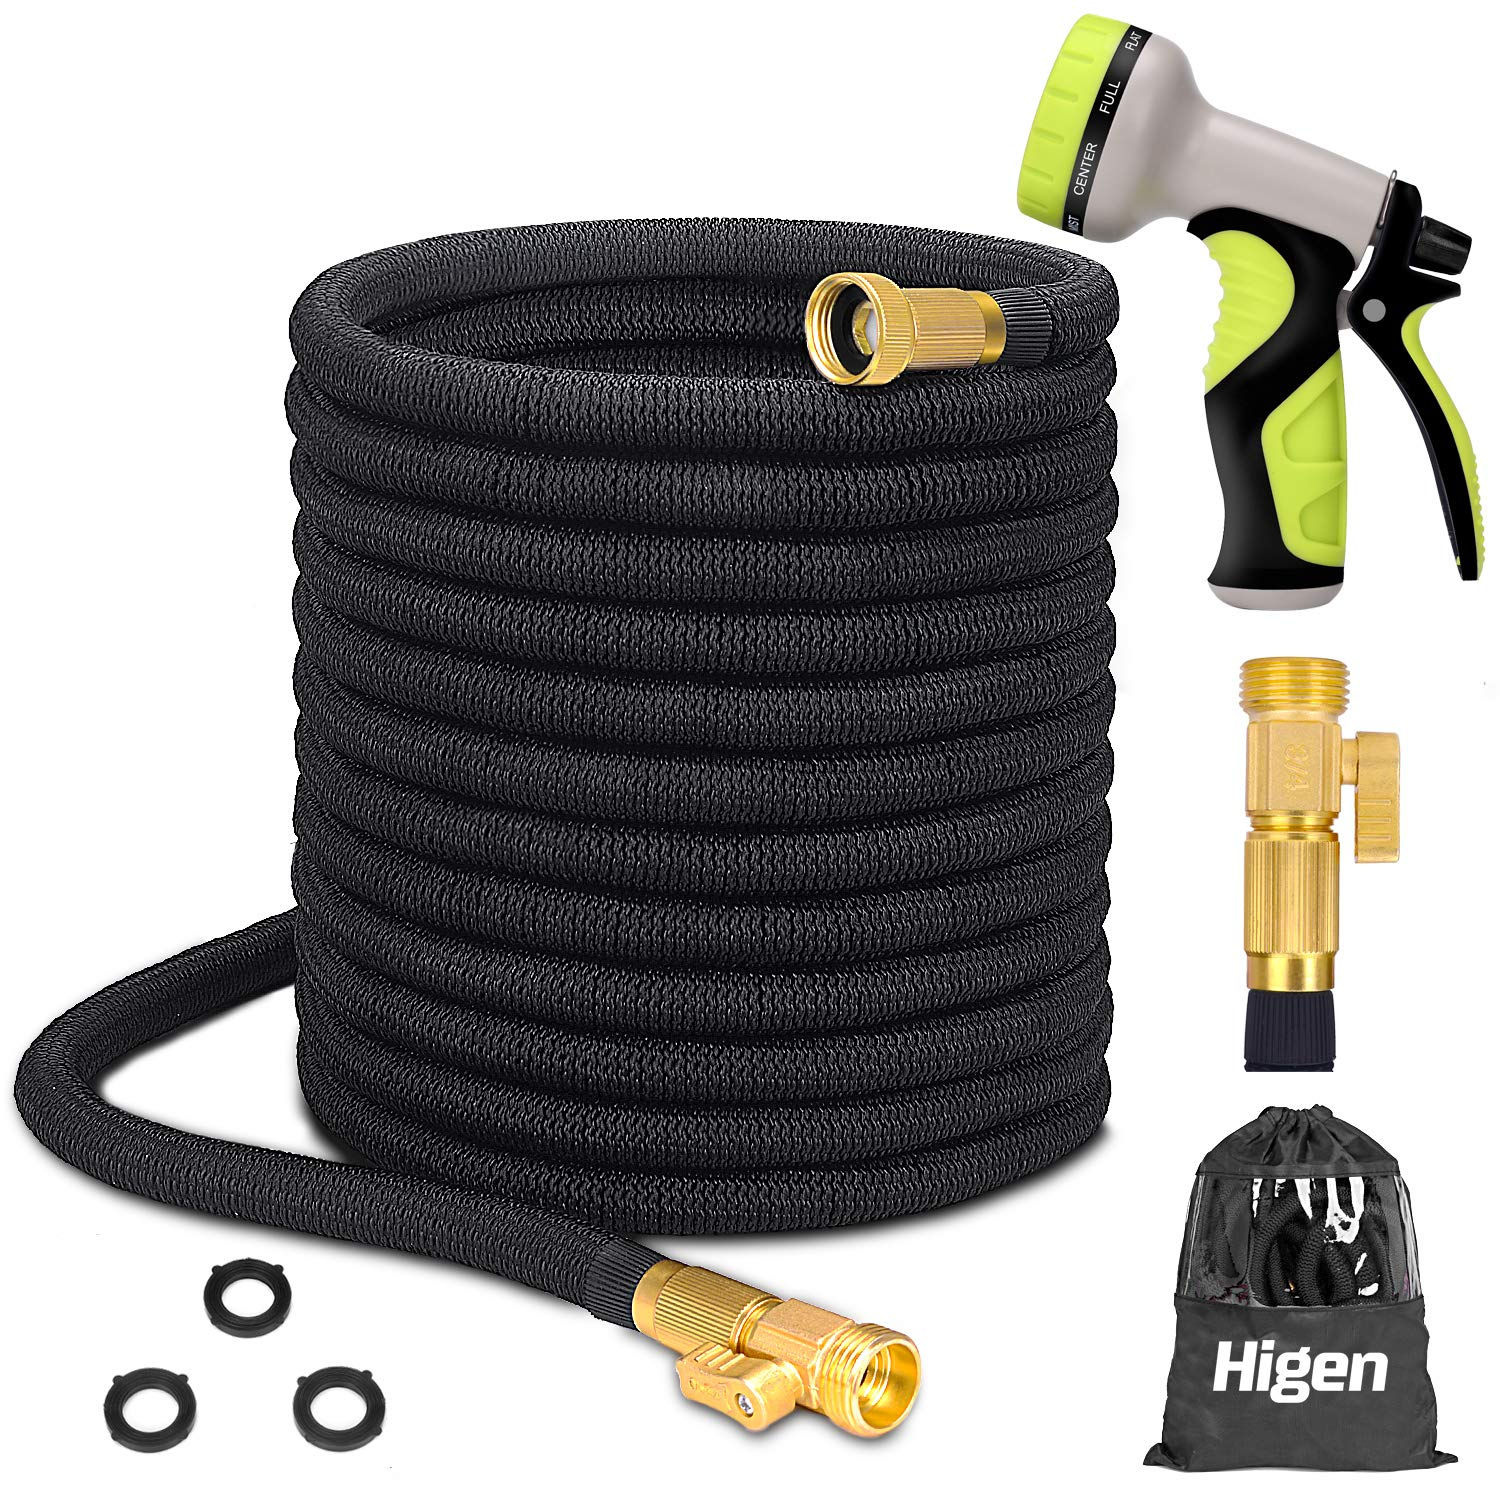 Higen 100ft Upgraded Expandable Garden Hose Set, Extra Strength Fabric Triple Layer Latex Core, 3/4'' Solid Brass Fittings, 9 Function Spray Nozzle with Storage Bag, Premium No-Kink Flexible Water Hose